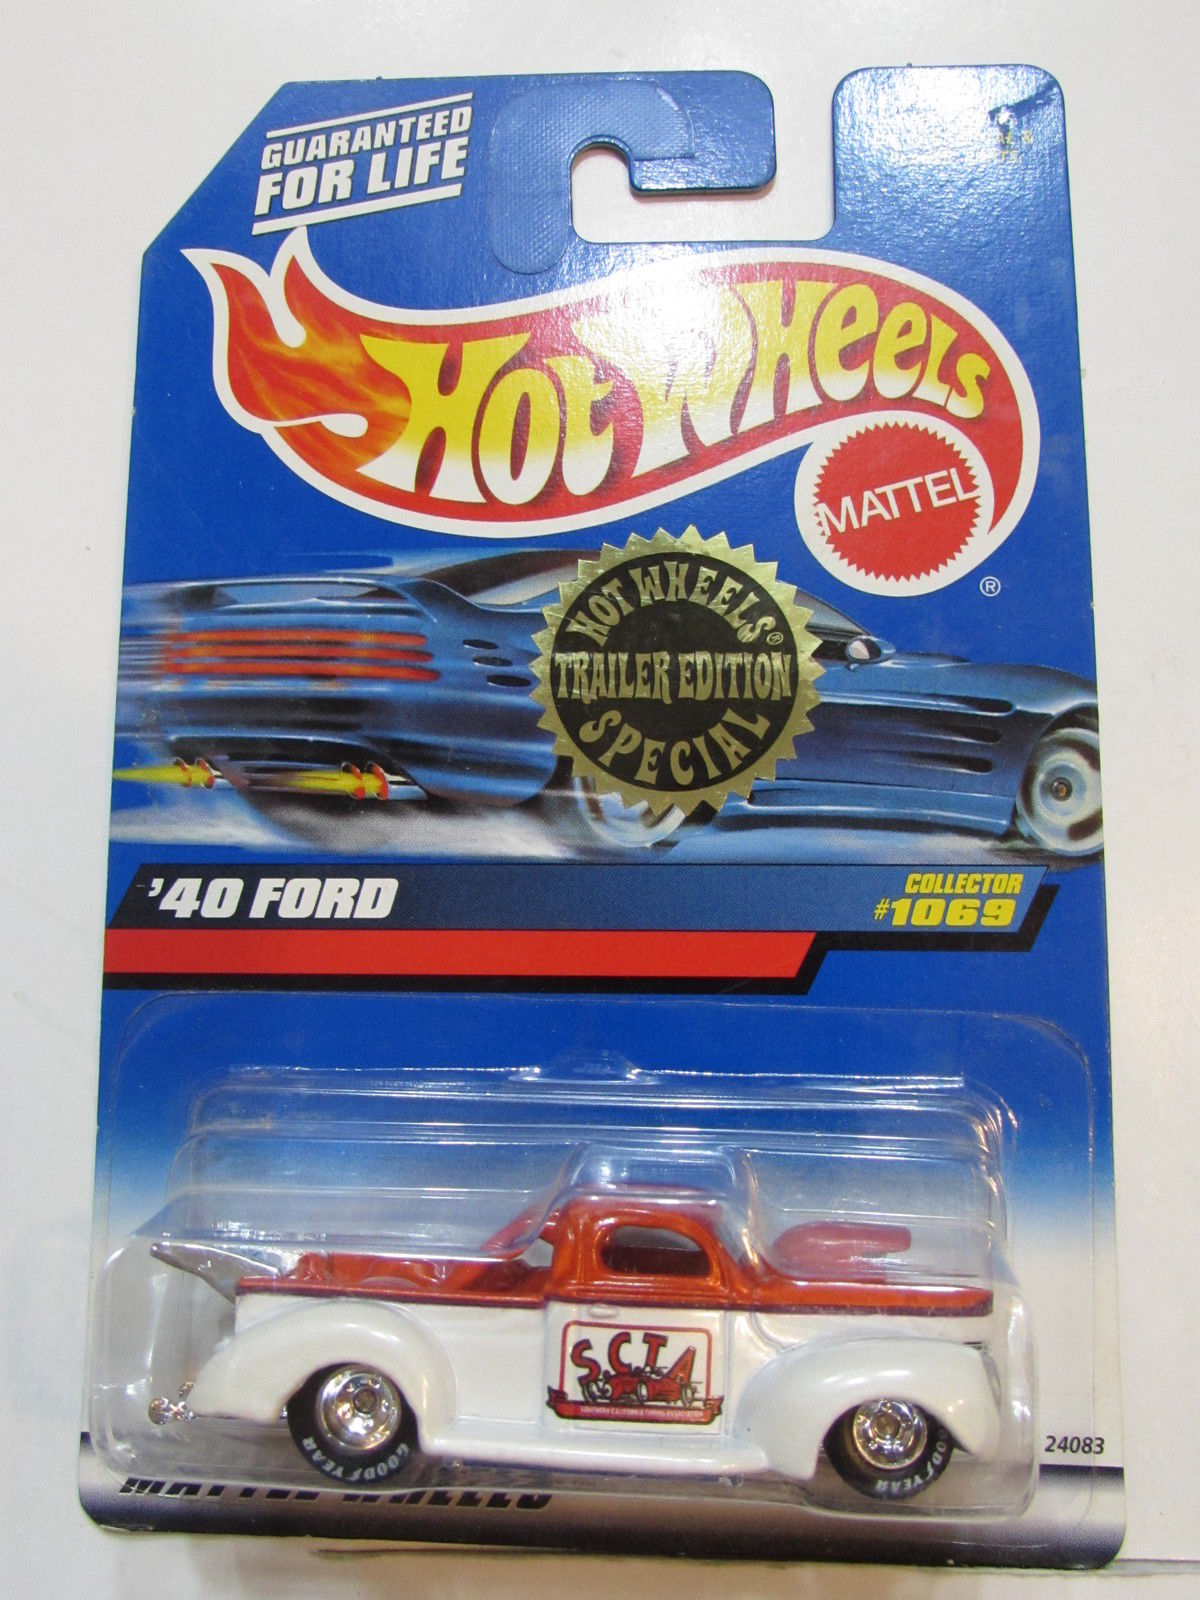 HOT WHEELS 1999 TRAILER EDITION SPECIAL '40 FORD COLLECT. #1069